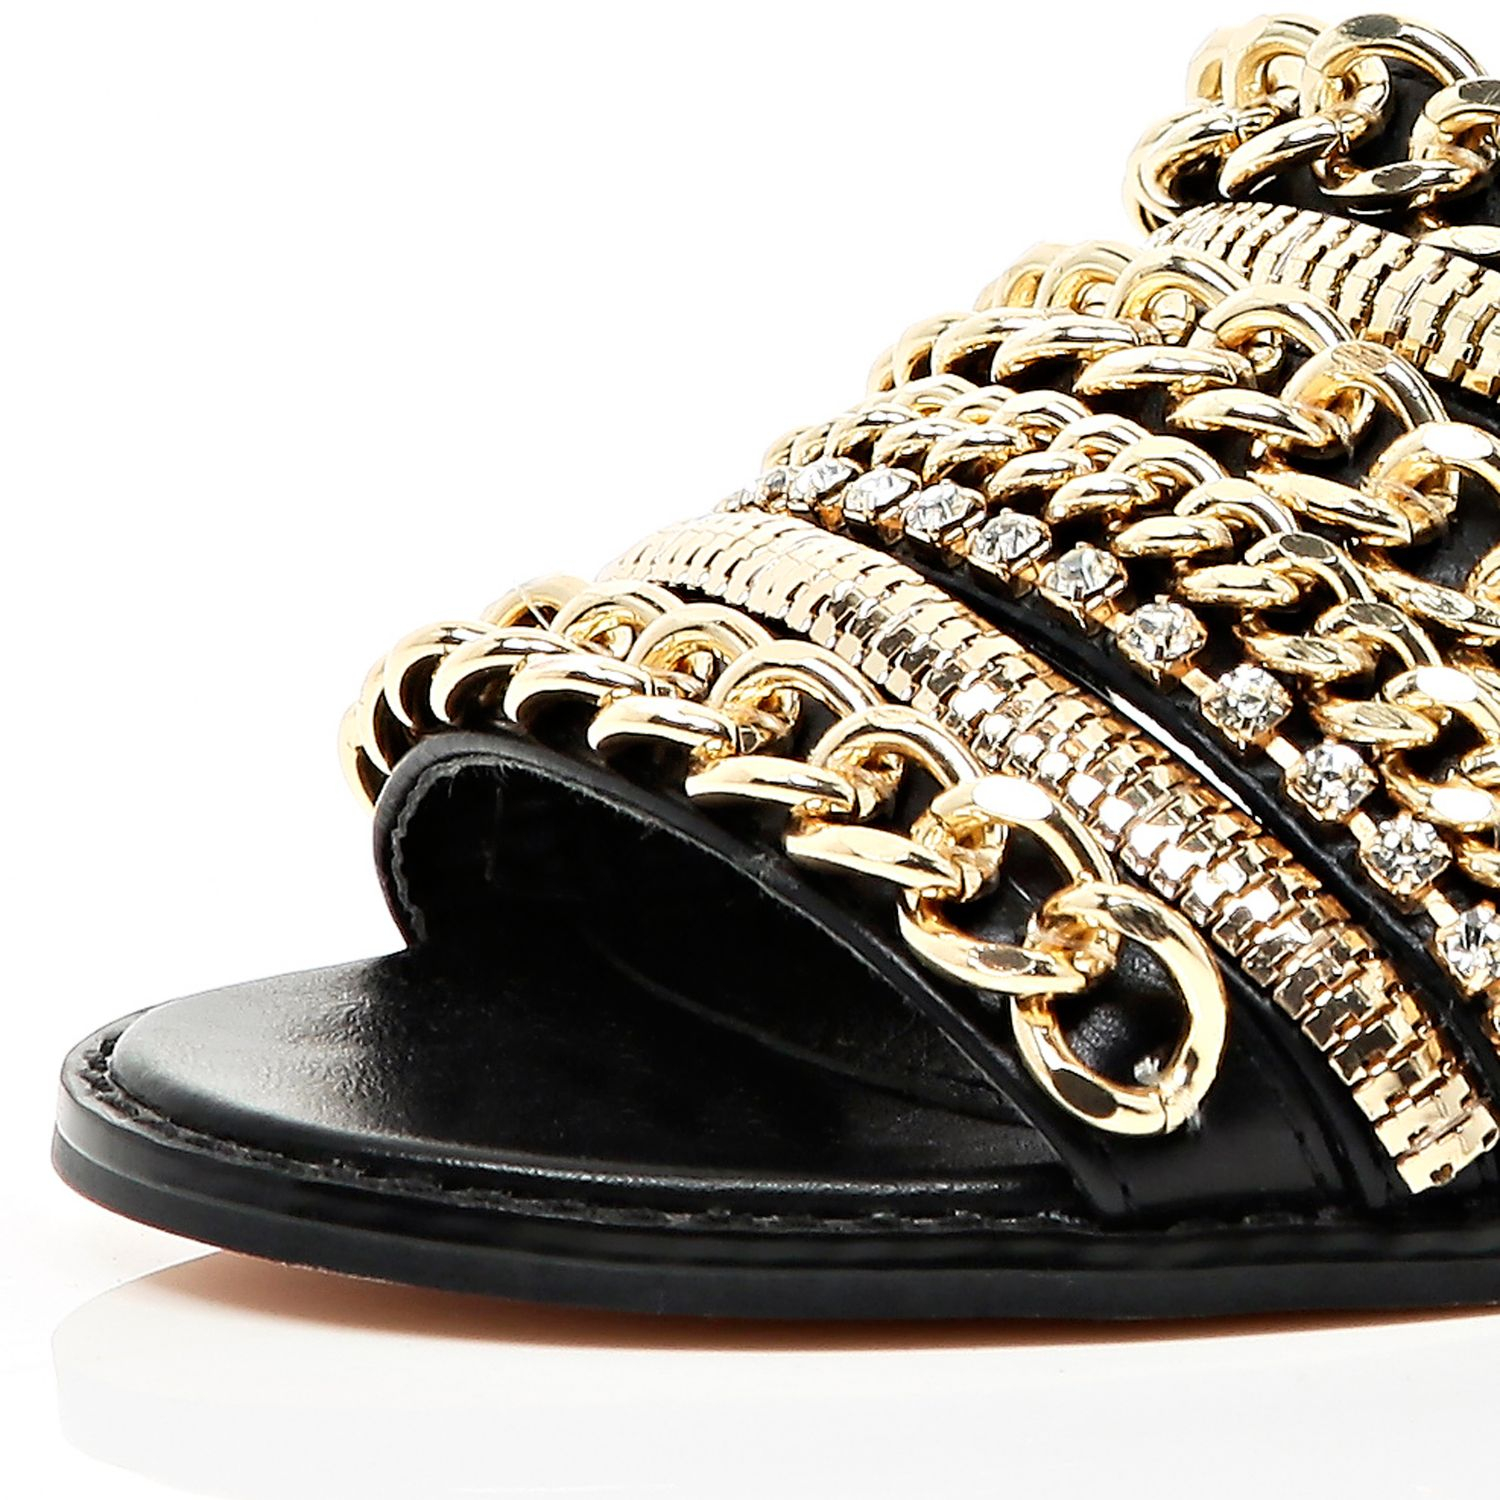 Black sandals in river island